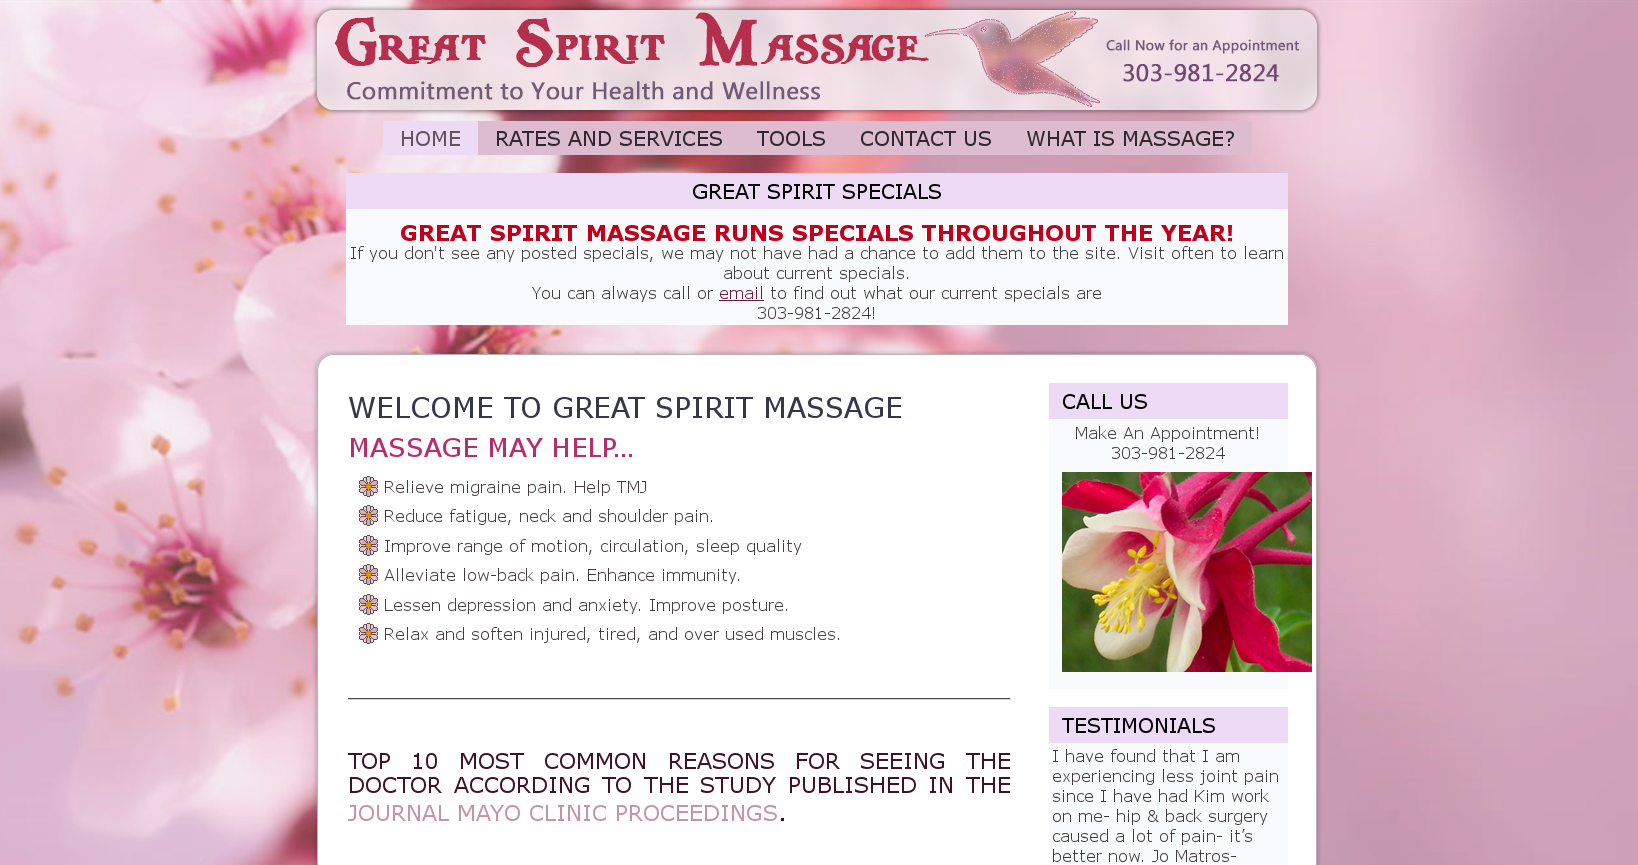 Great Spirit Massage